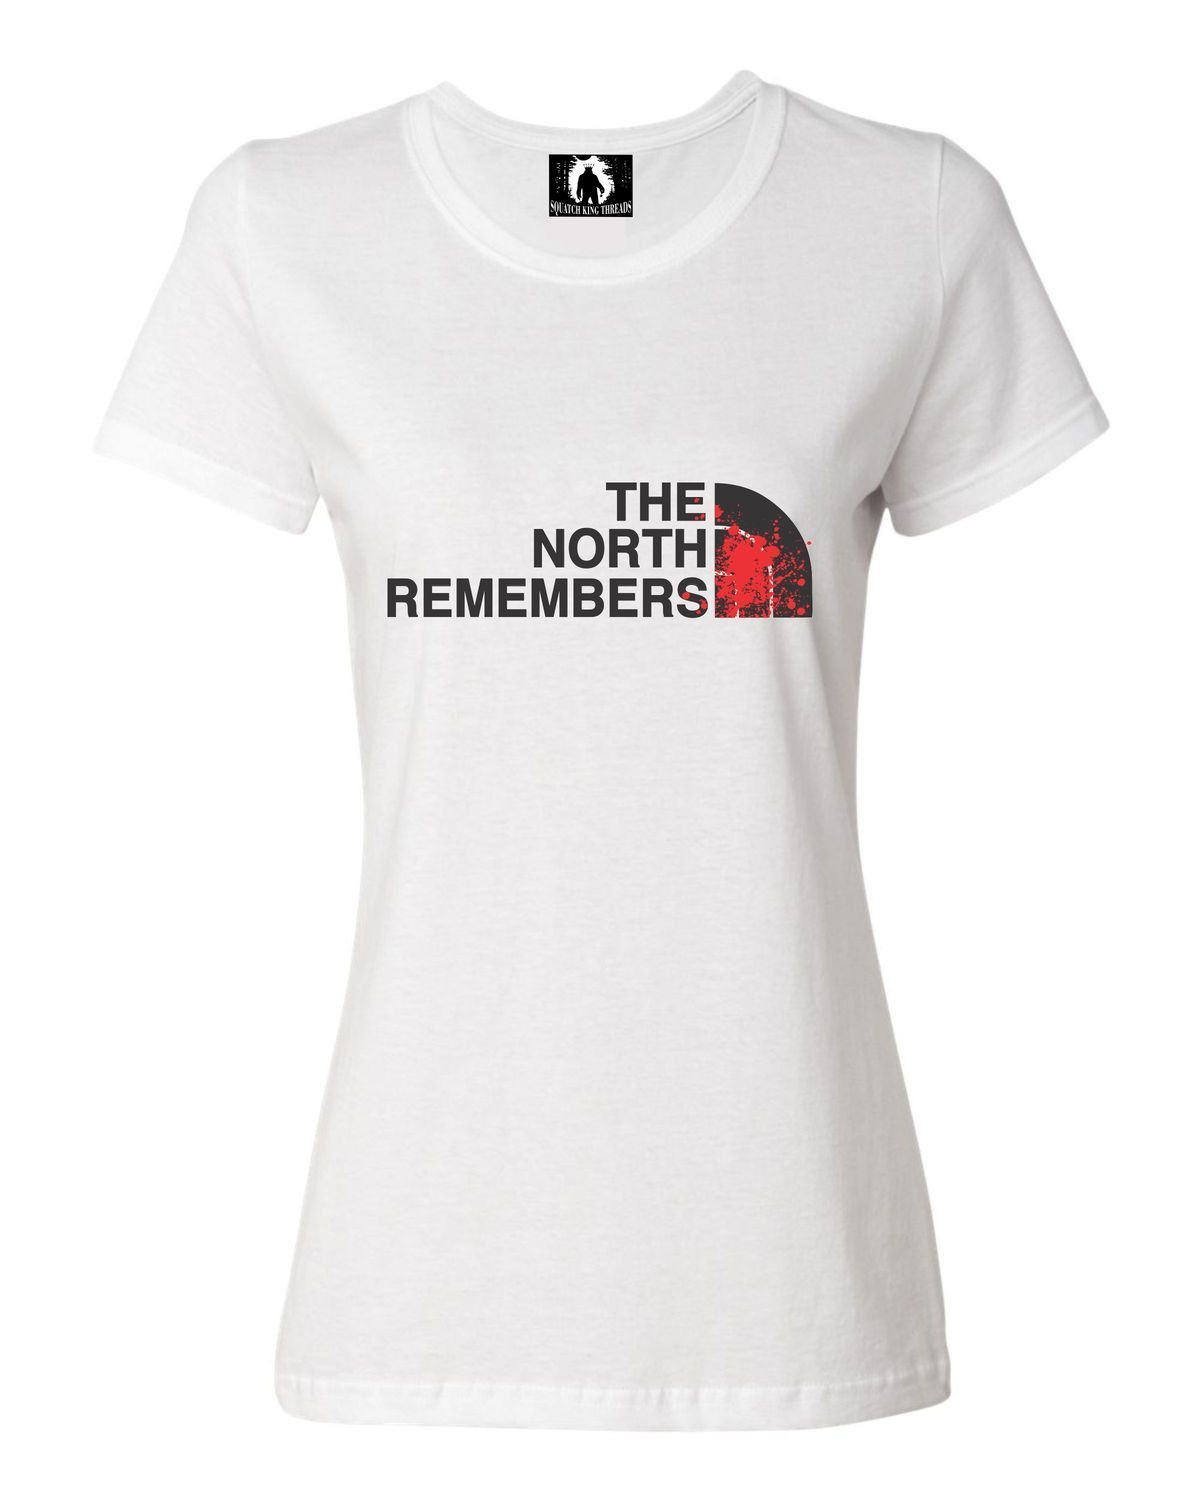 Womens The North Remembers T-Shirt